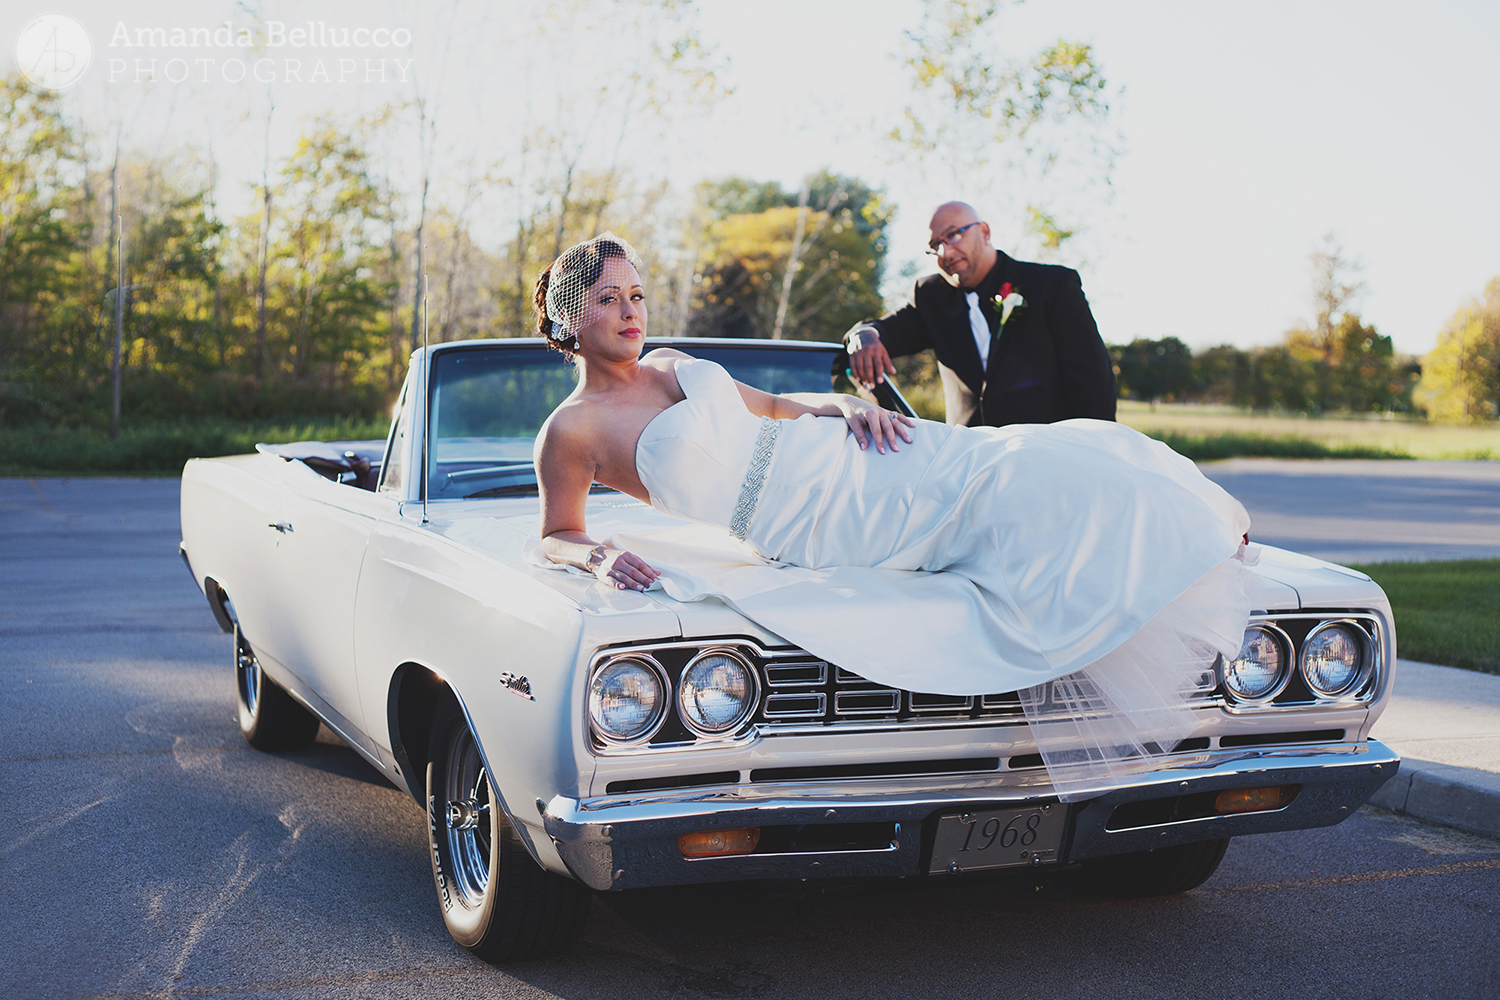 The bride and groom pose for wedding photos with a vintage convertible at the Italian American Community Center.